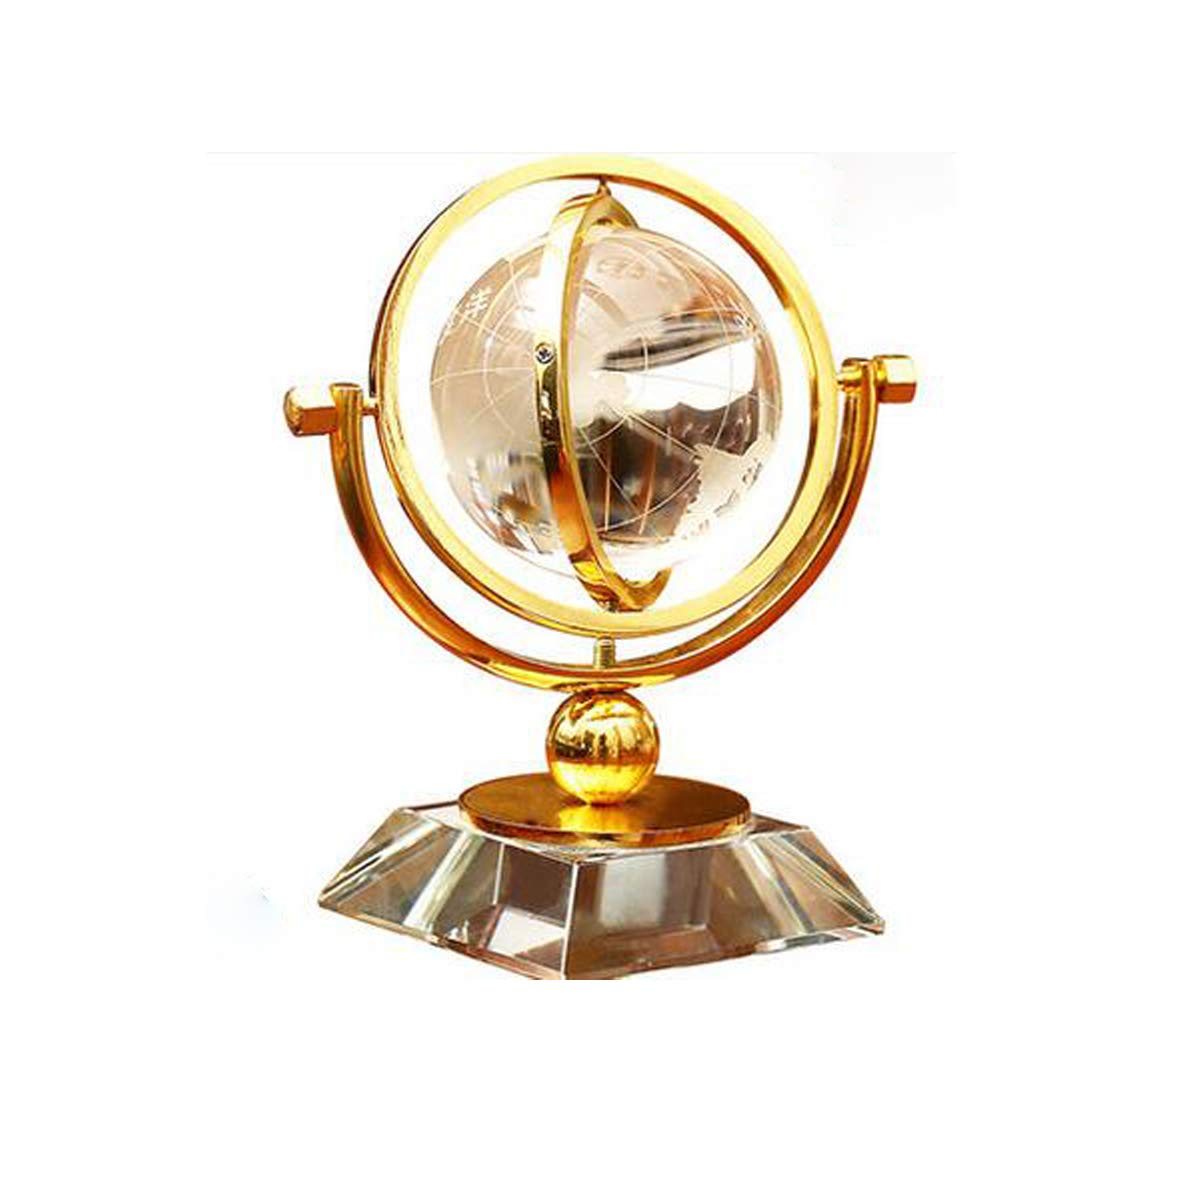 Kehuiying13 Crystal Ball Decoration Globe Home Furnishings European Desk Study American Wine Cabinet Decoration Bookcase Living Room (Color : Gold)